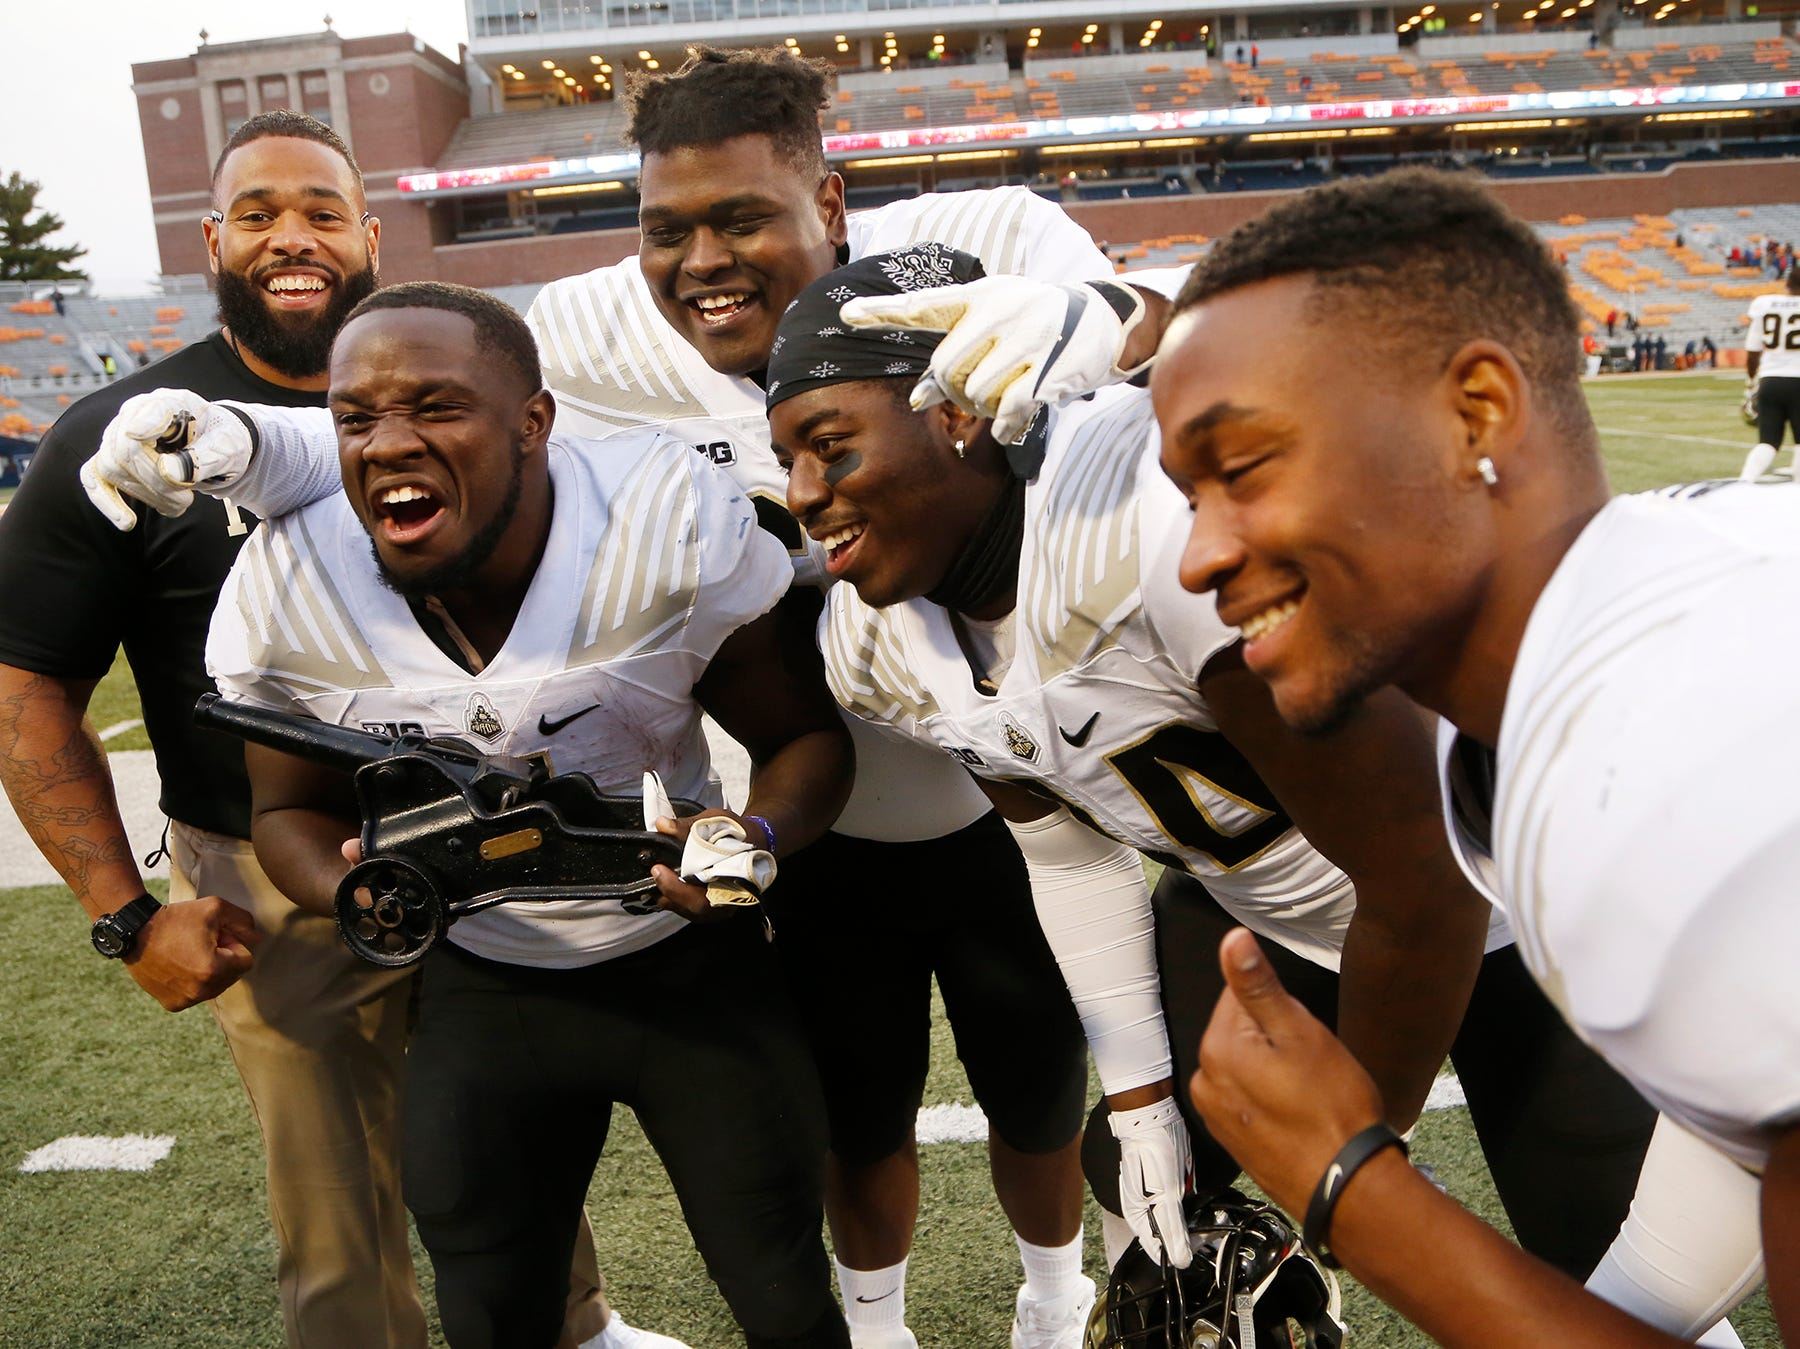 D. J. Knox, left, and his teammates celebrate with The Cannon traveling trophy after the Boilermakers pounded Illinois 46-7 Saturday, October 13, 2018, in Champaign, Illinois.